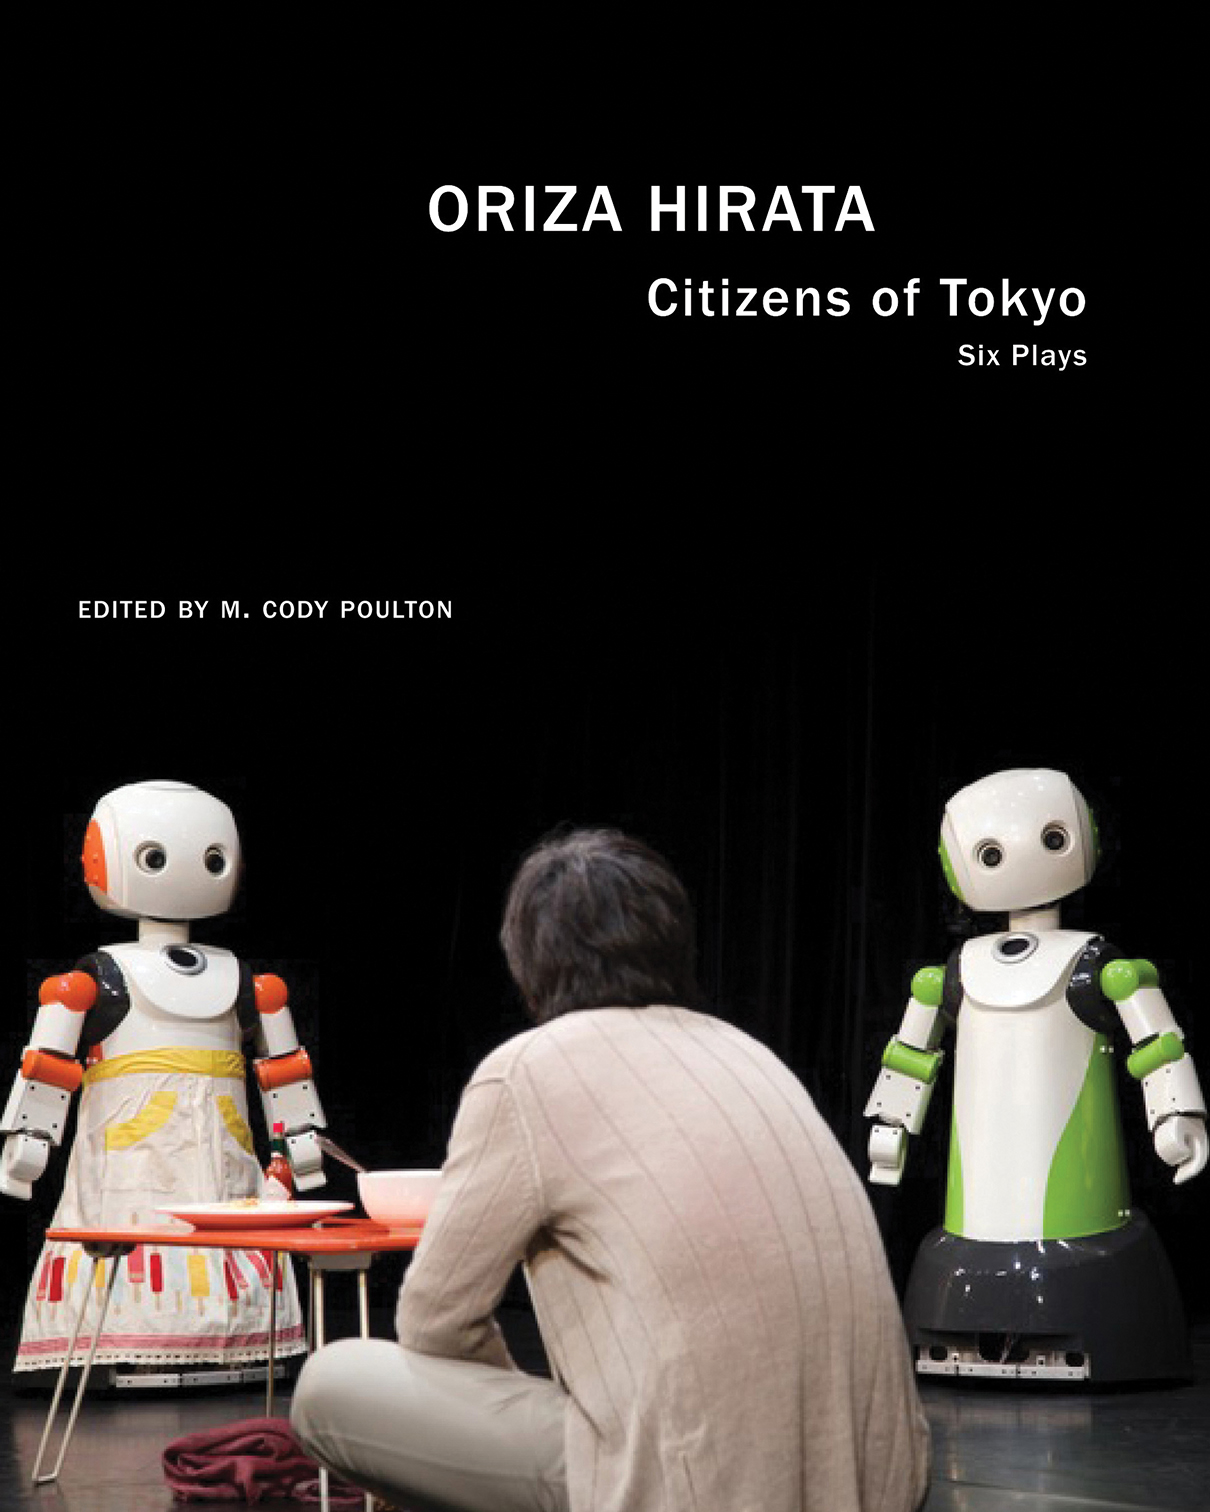 Citizens of Tokyo: Six Plays by Oriza Hirata |  Seagull Books